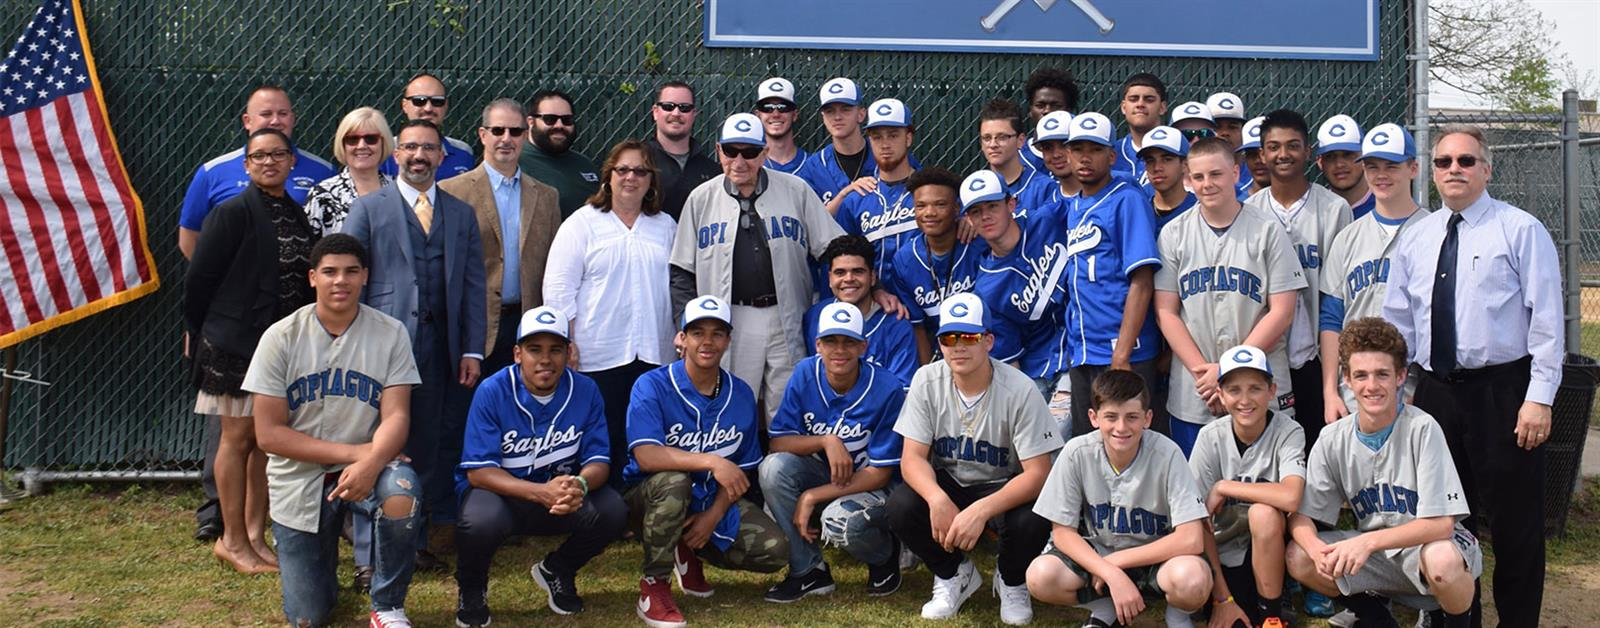 Copiague Baseball Field Dedicated to Former Athletic Director photo